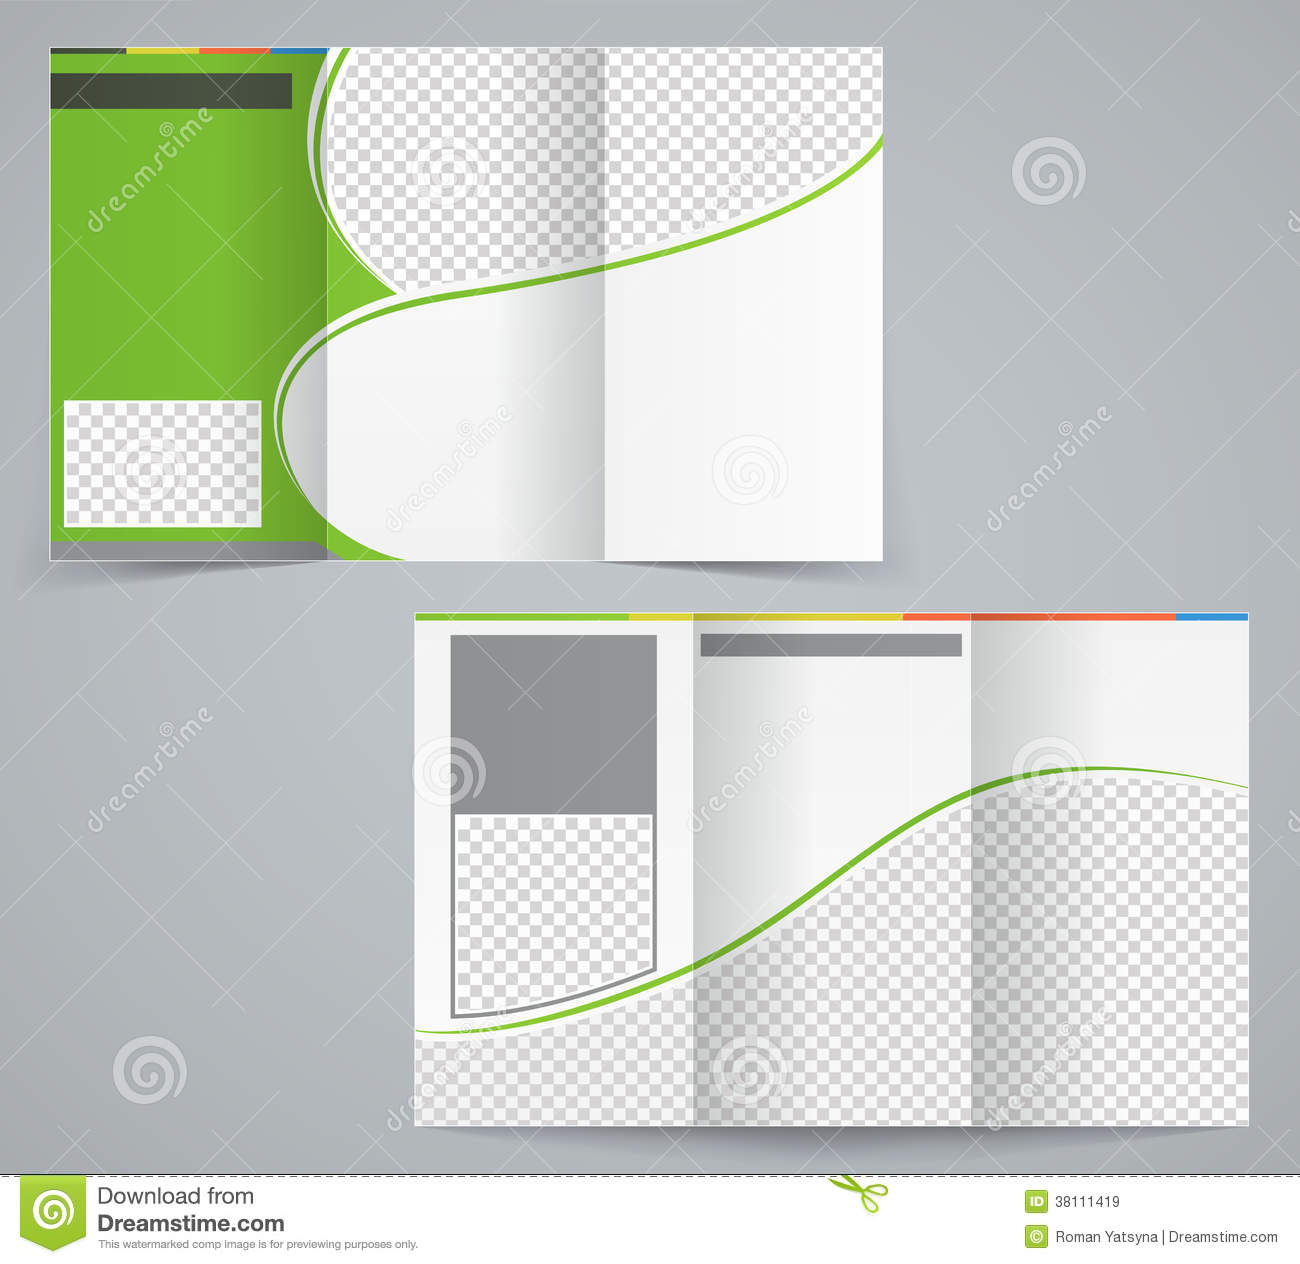 Trifold Business Brochure Template Vector Green Stock Vector - Business brochure templates free download